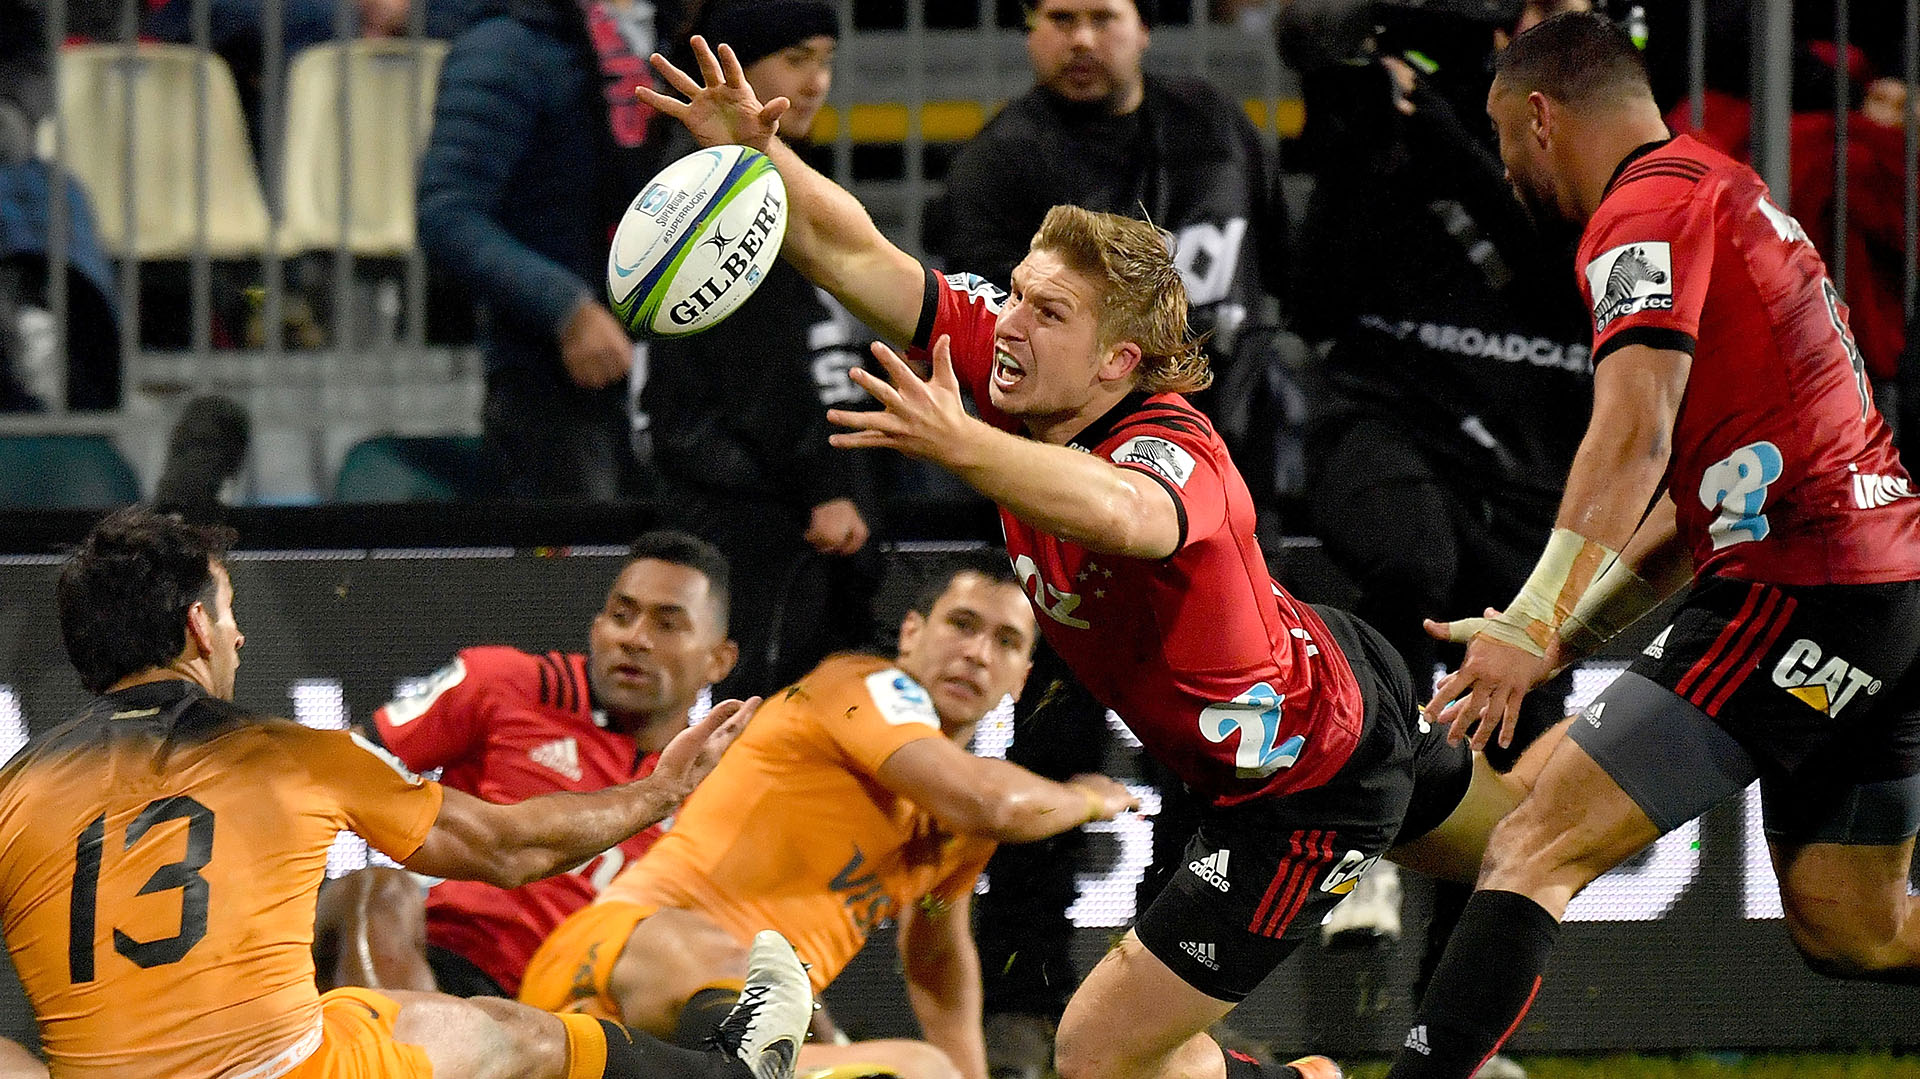 Jack Goodhue va por el balón durante la final entre Jaguares y Crusaders. (Photo by Marty MELVILLE / AFP)